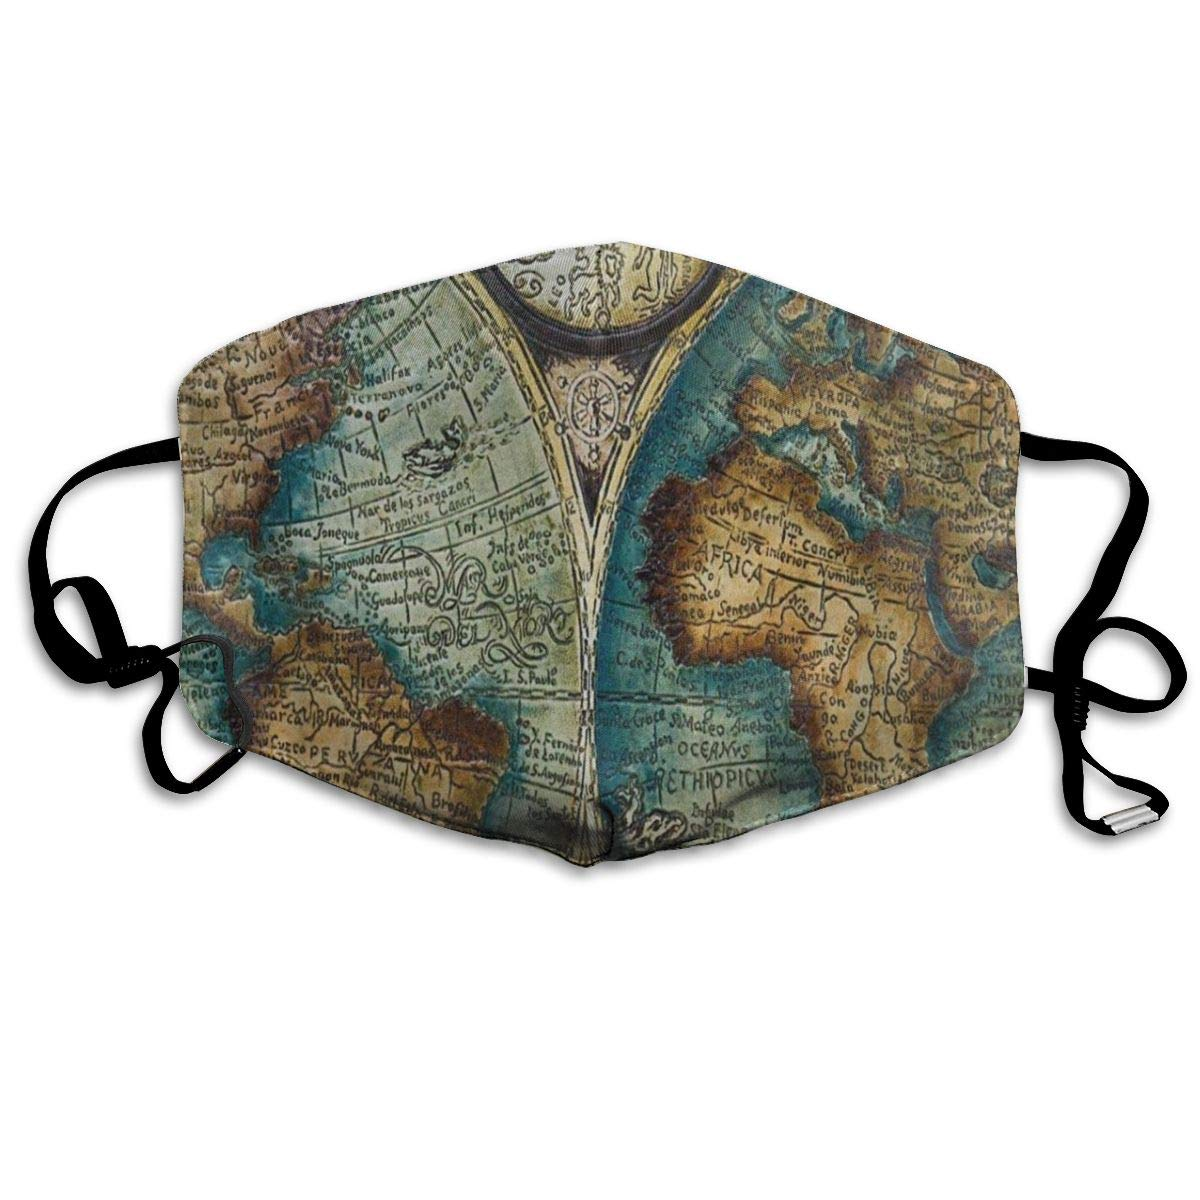 Old World Map Art Vintage Dust Mouth Mask Reusable Anti-Dust Face Mask Adjustable Earloop Skin Protection